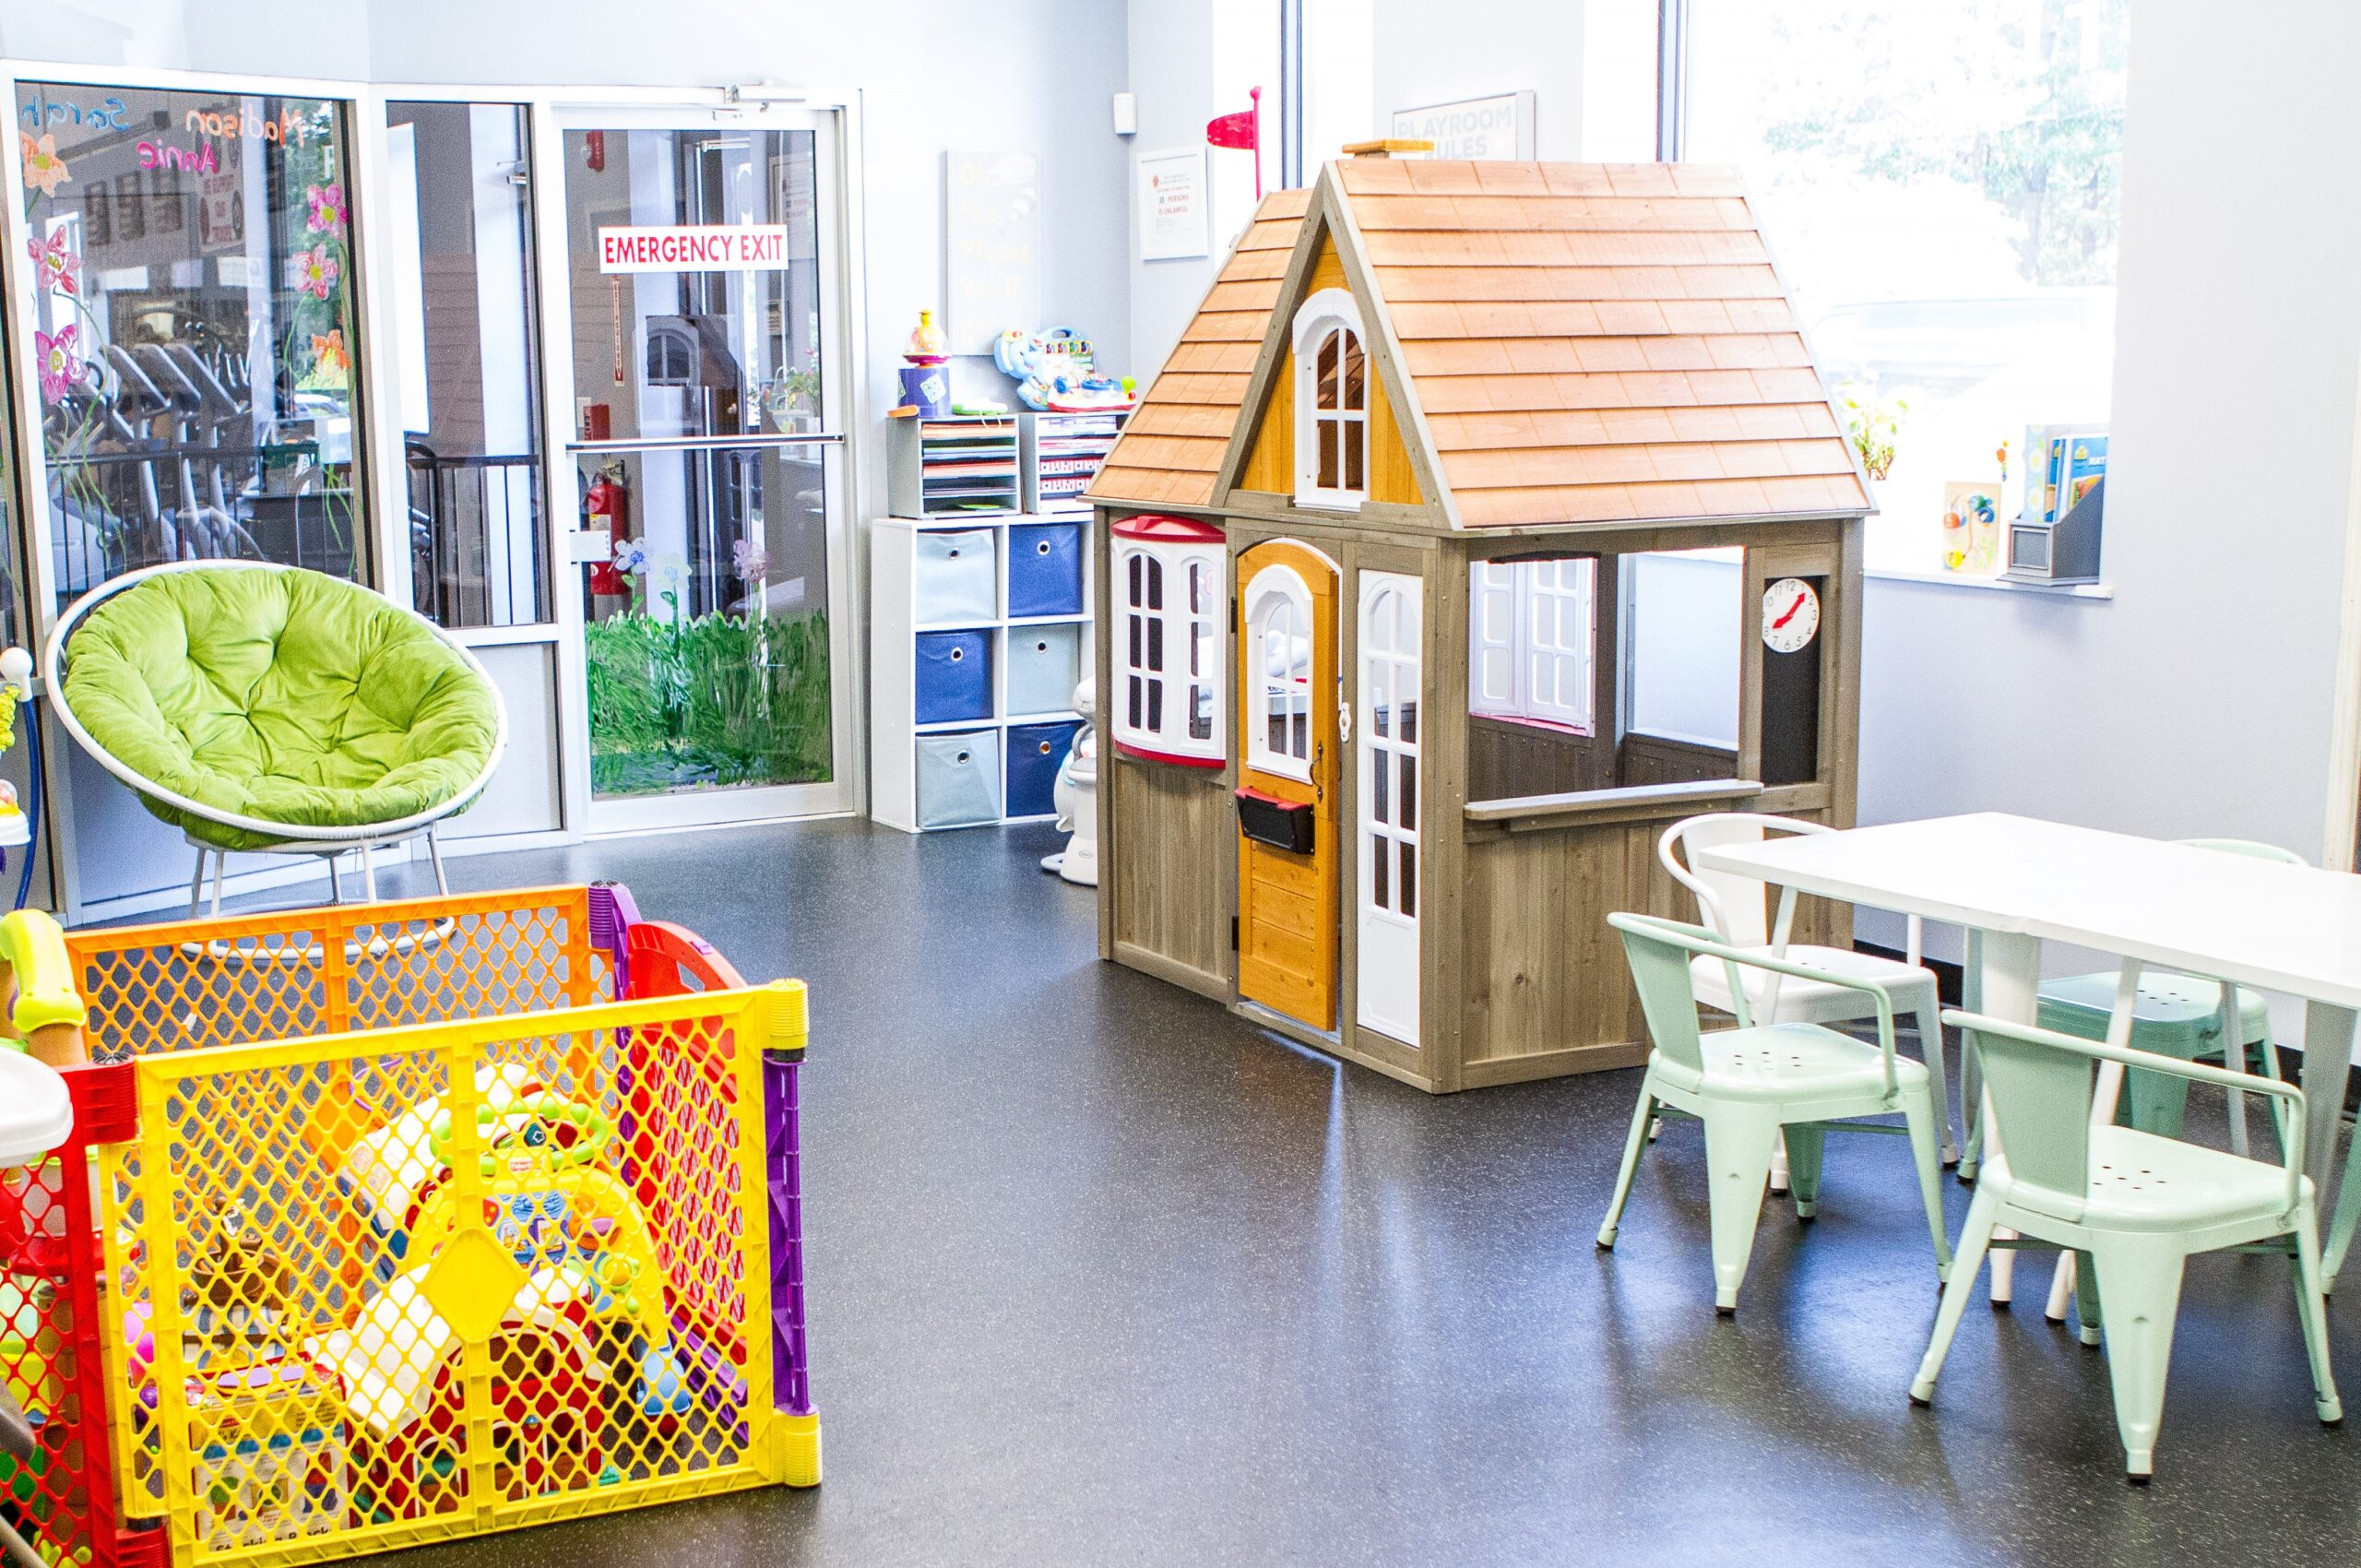 A photo of the arts and crafts day care room